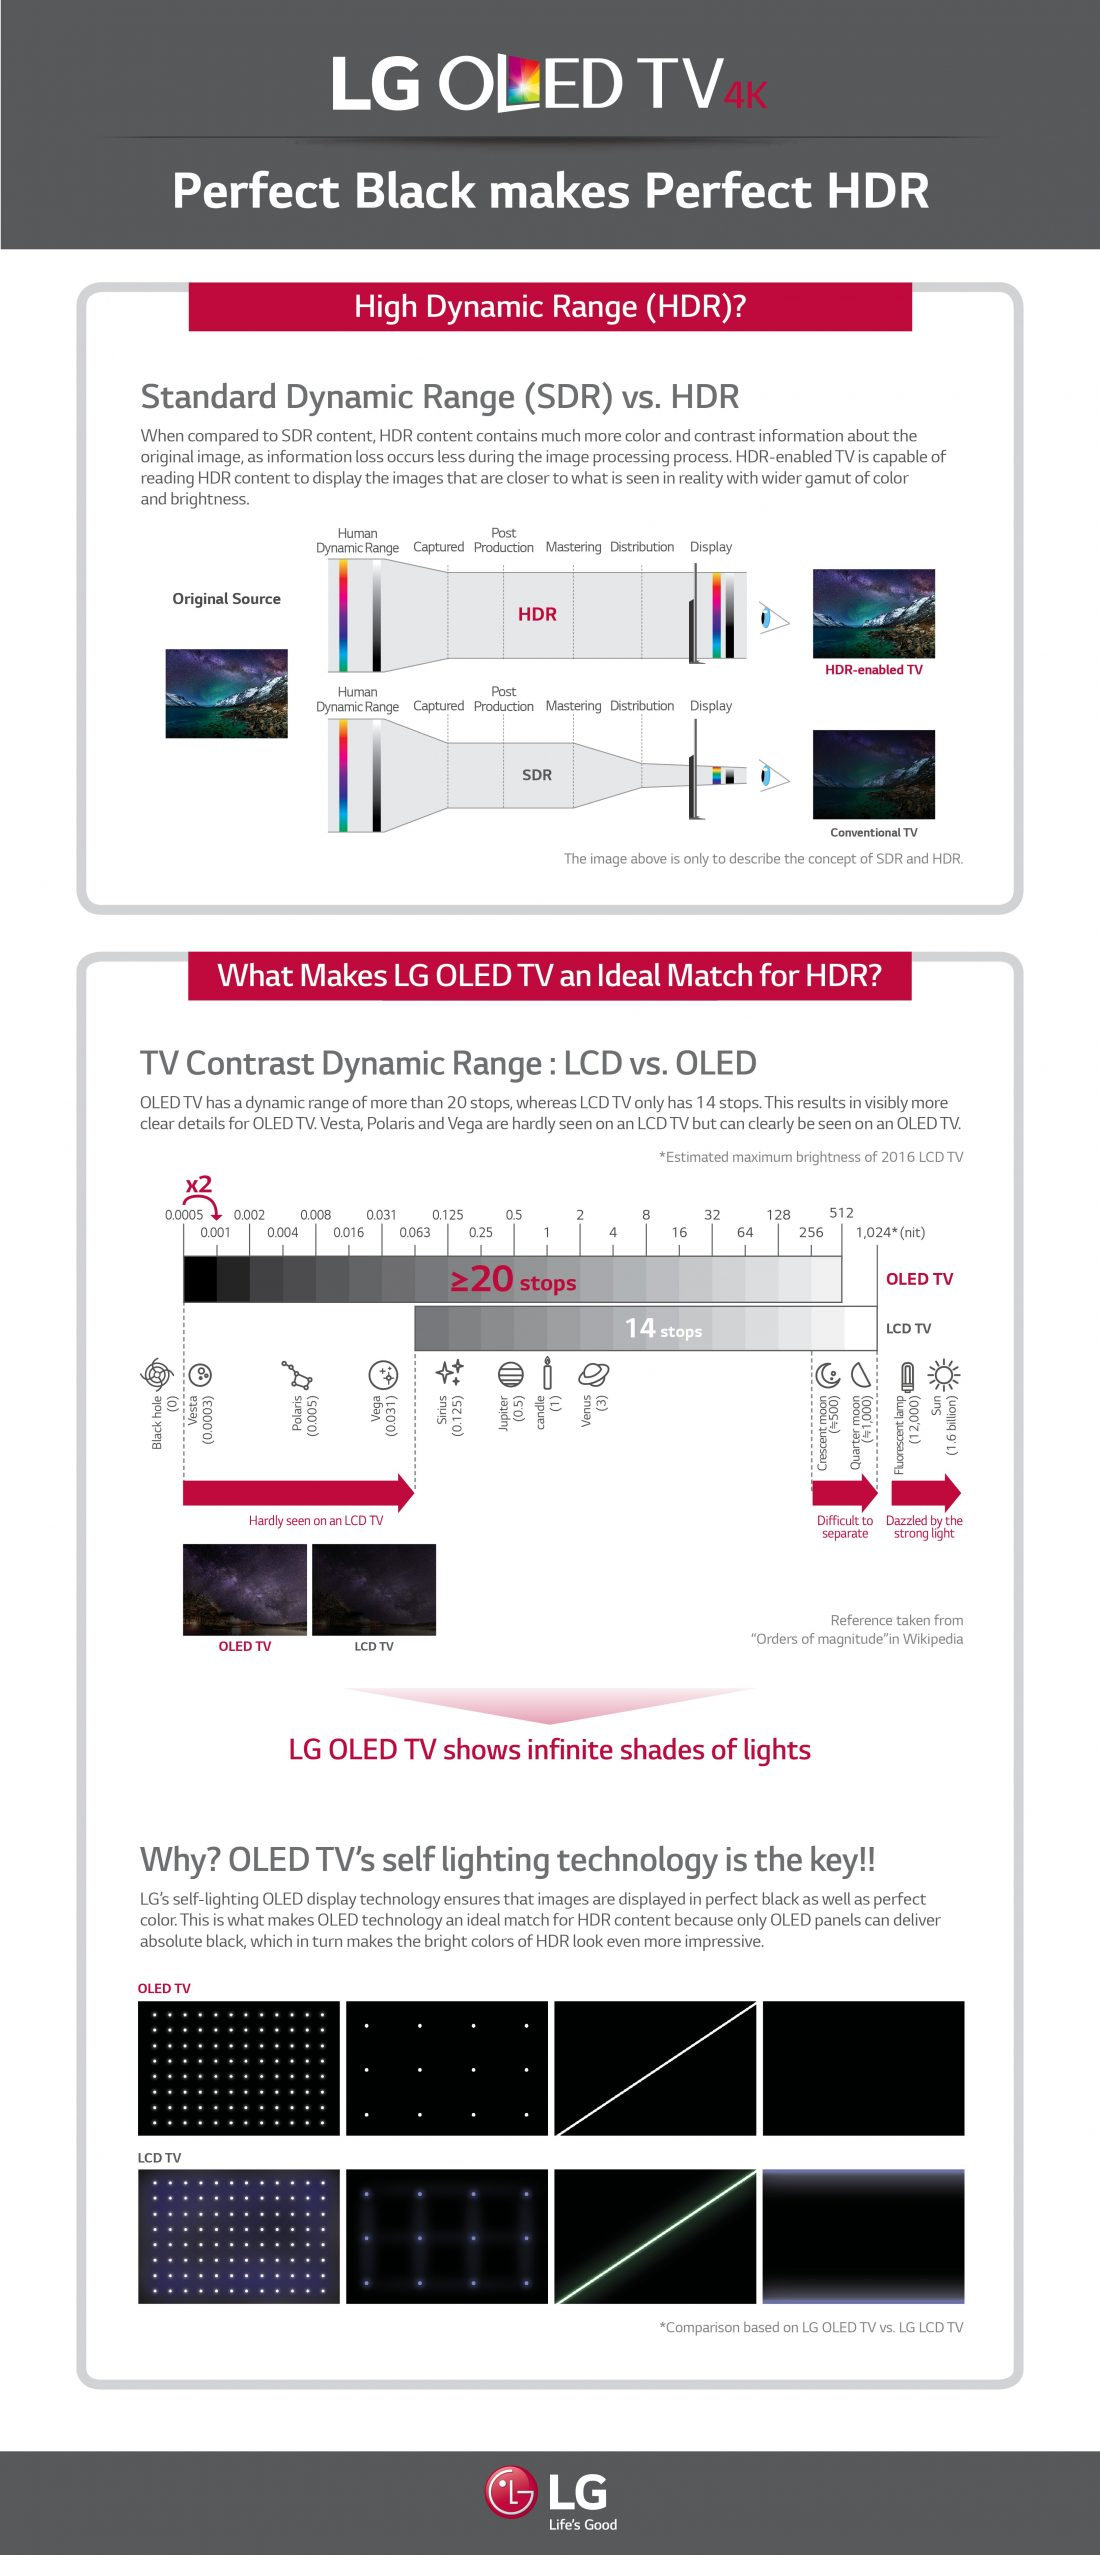 """This infographic titled, """"LG OLED TV 4K: Perfect Black Makes Perfect HDR,"""" compares High Dynamic Range (HDR) technology to Standard Dynamic Range (SDR), and explains why LG OLED TVs are perfect for HDR."""